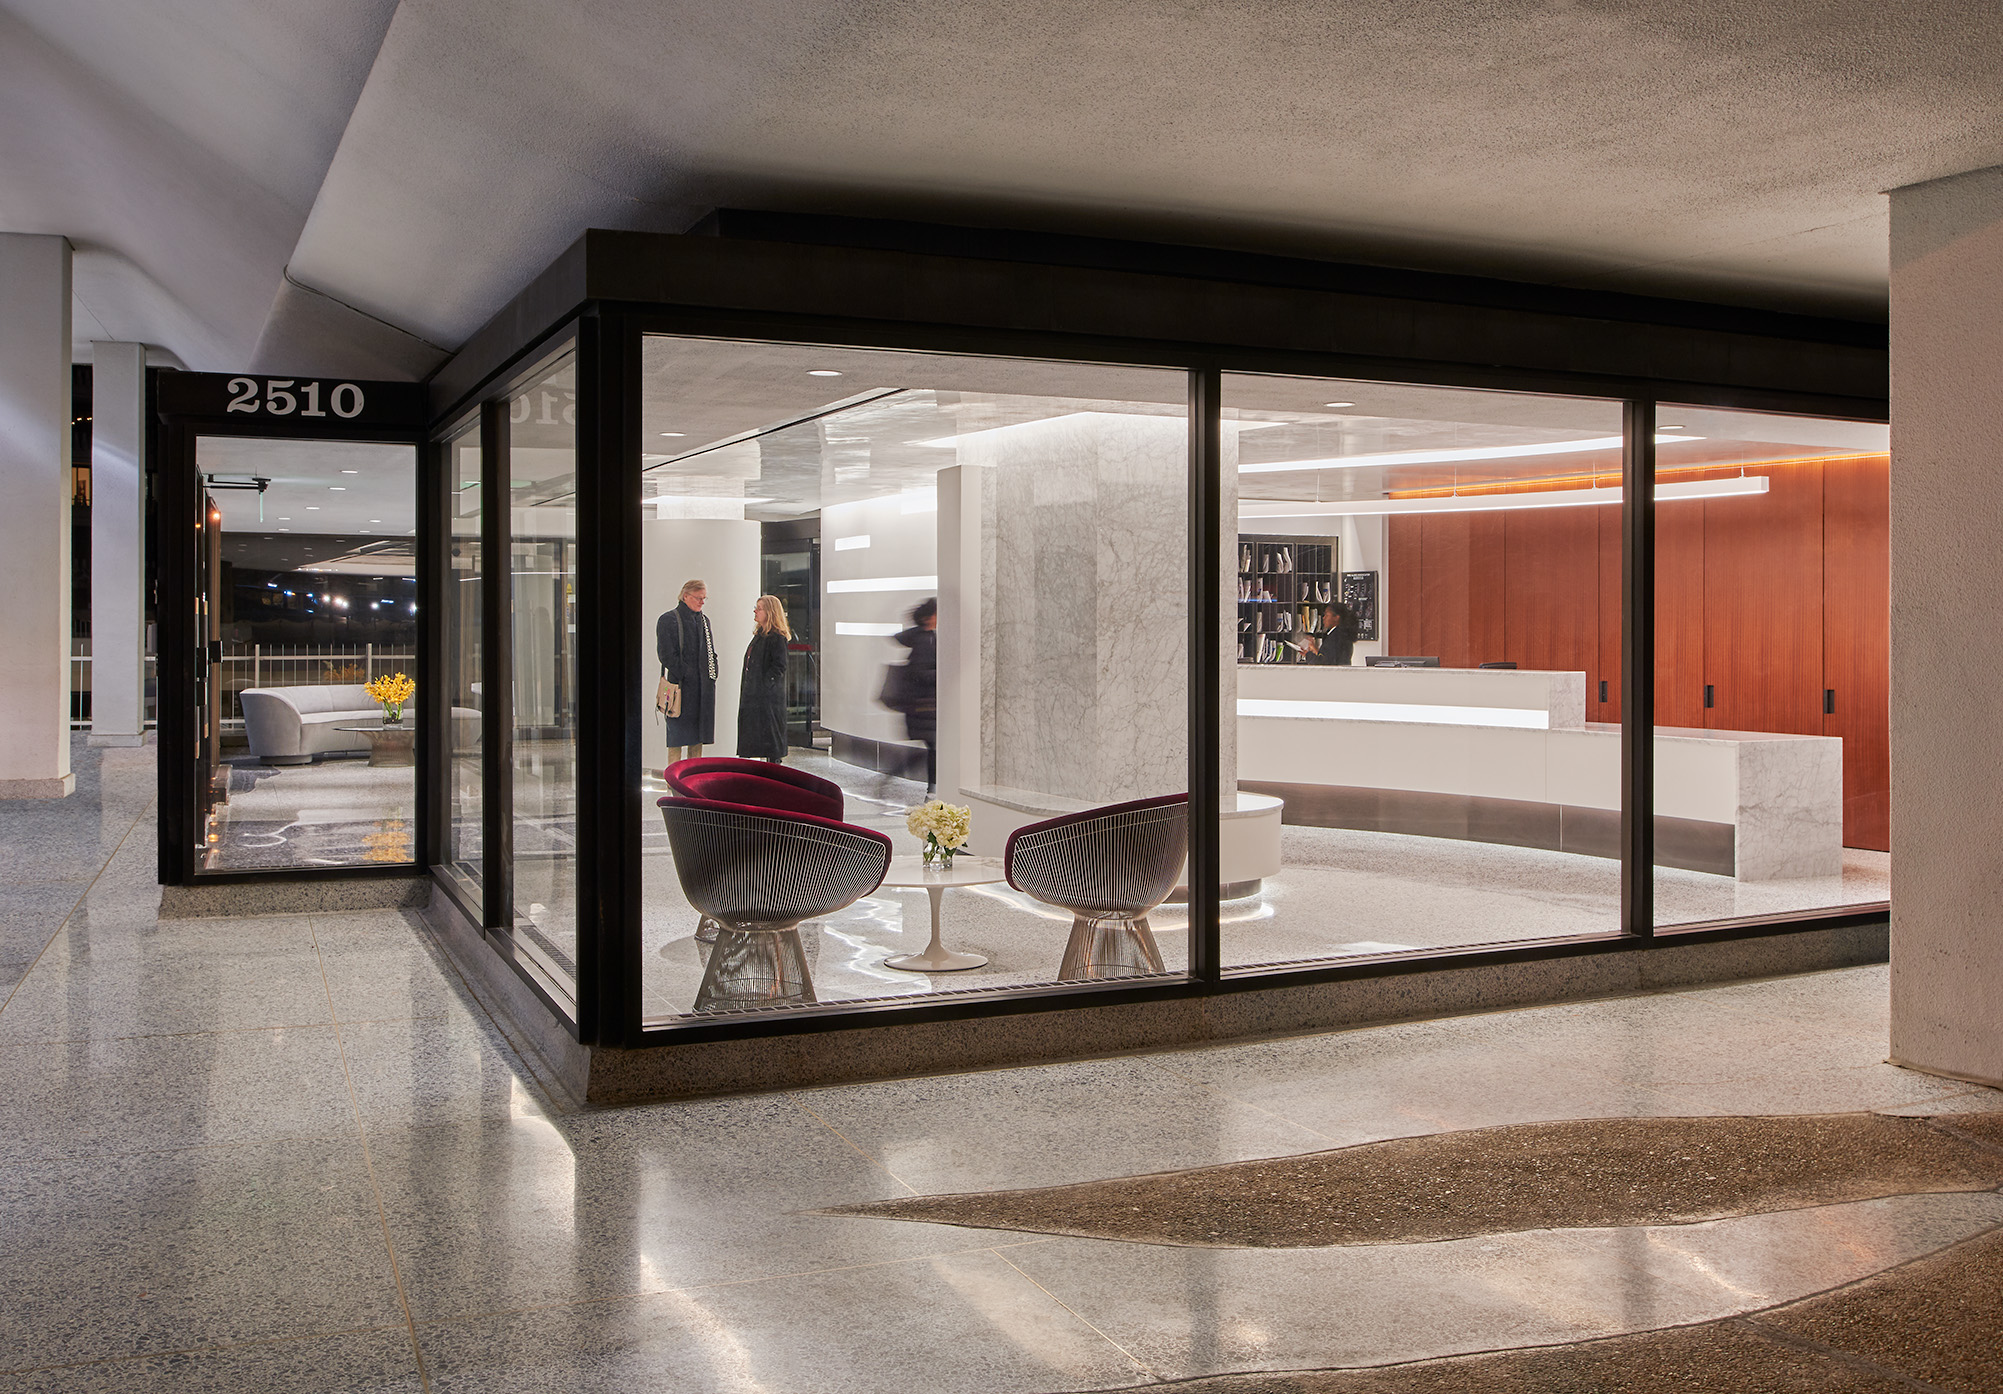 Watergate_Lobby_McInturff_Architects_10_Anice.jpg